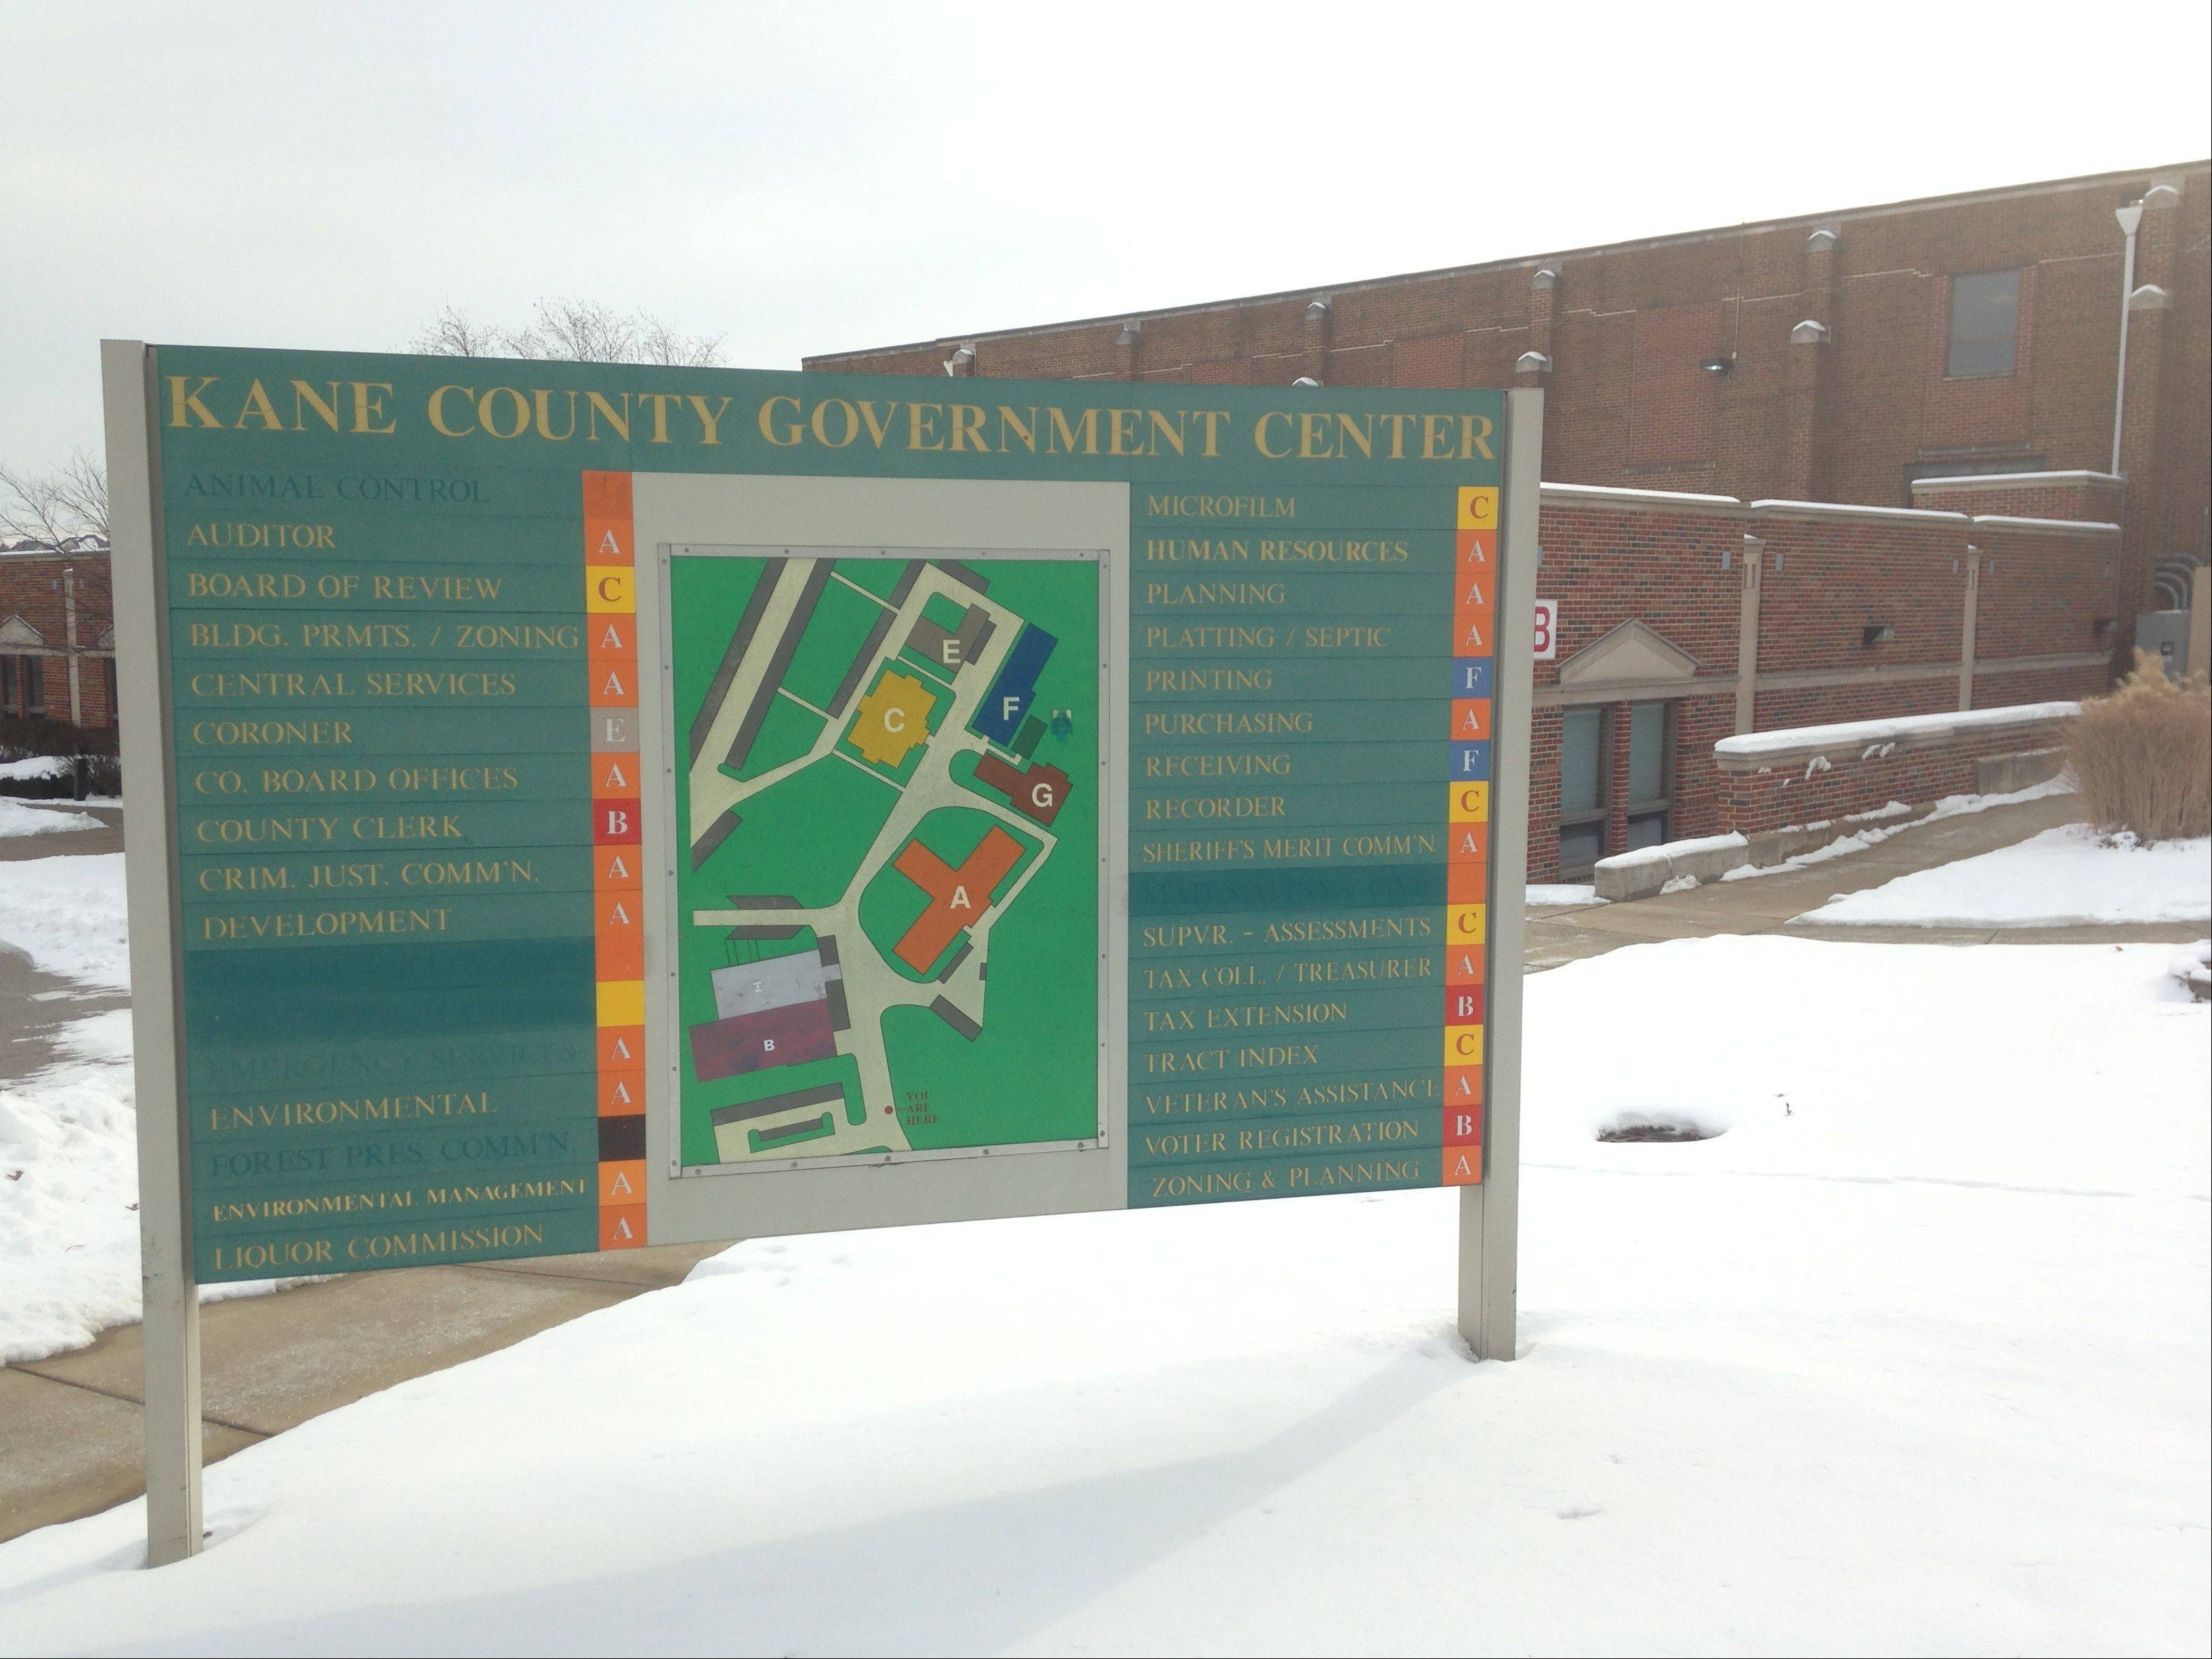 Kane County is considering replacing the signs at the Kane County Government Center in Geneva, to better direct visitors to the right offices. The proposed contract is more than $47,000.